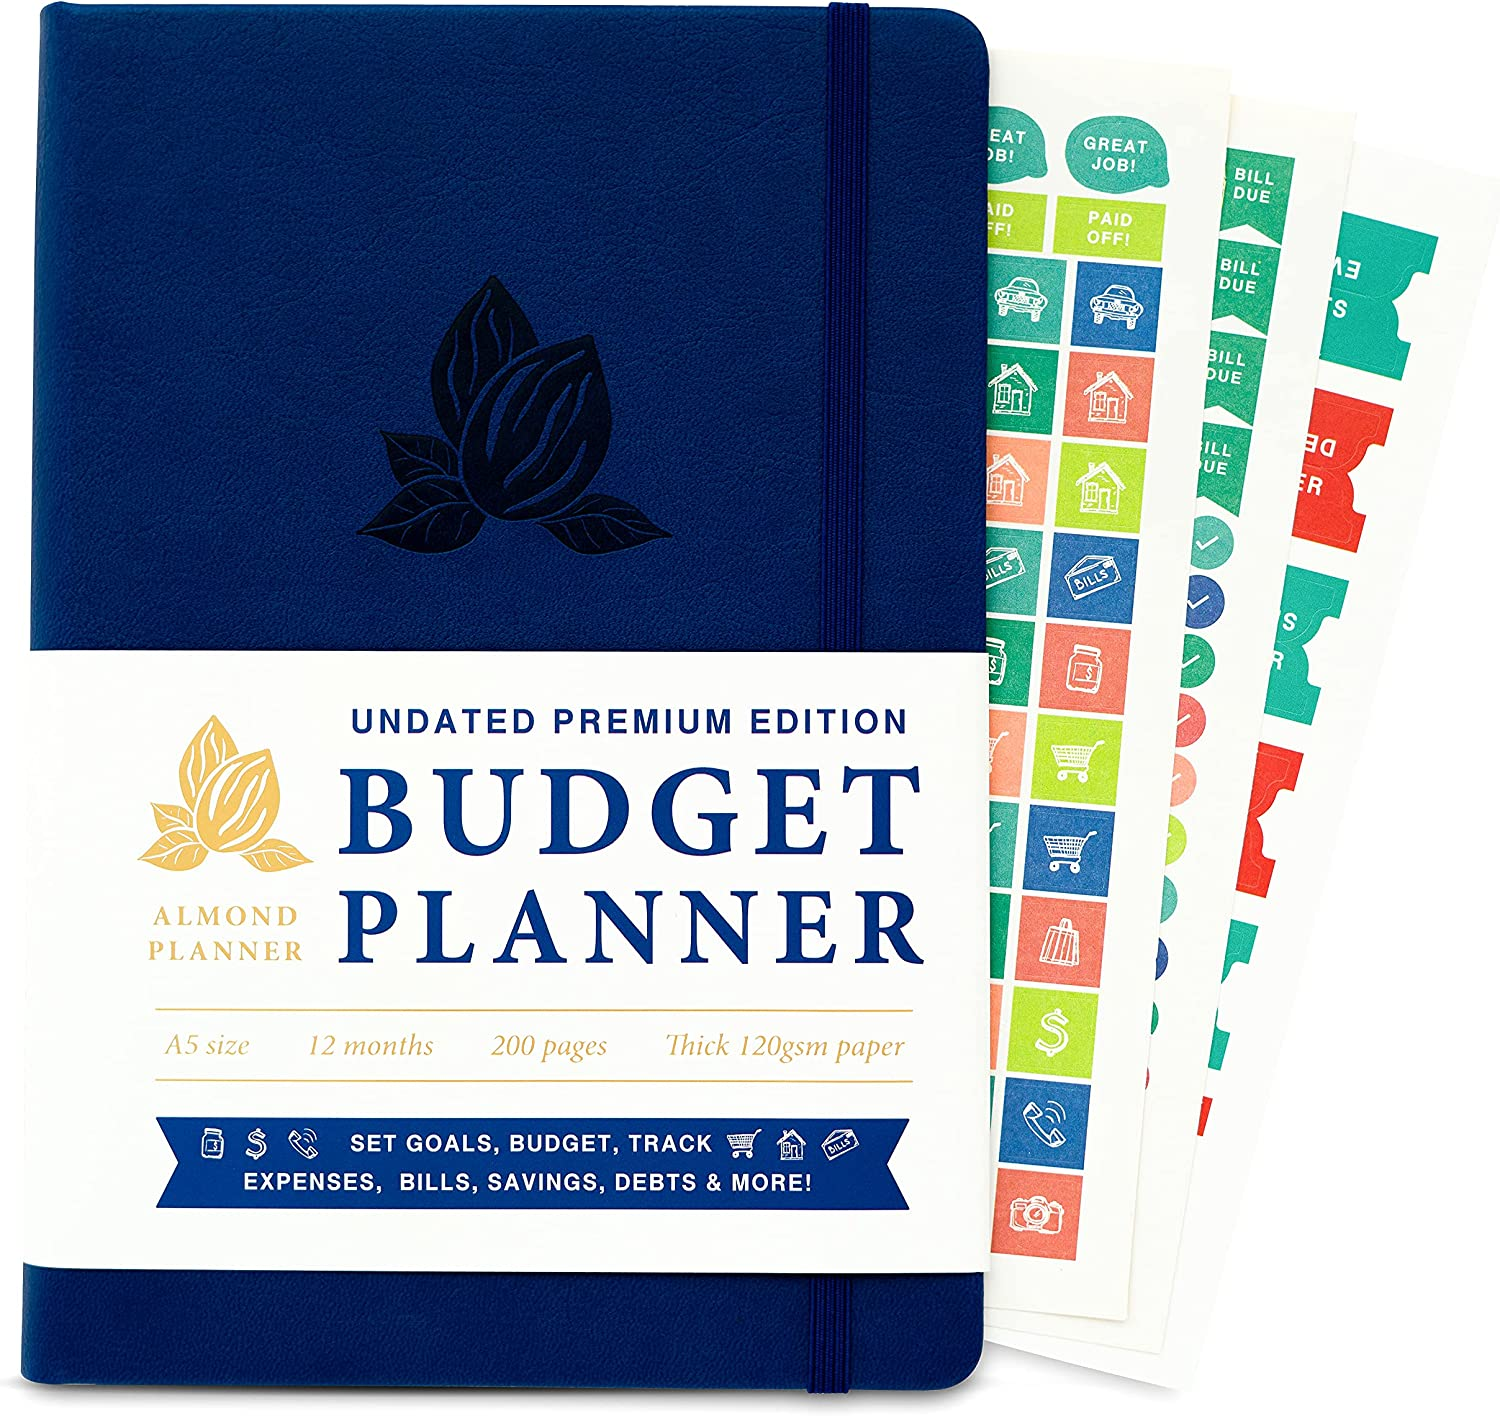 ALMOND PLANNER Monthly Budget Planner 2021 - Undated Finance Planner Bill Organizer, Expense and Bill Tracker Notebook For Saving Money, Paying debts, Financial Budget Book - A5 Blue